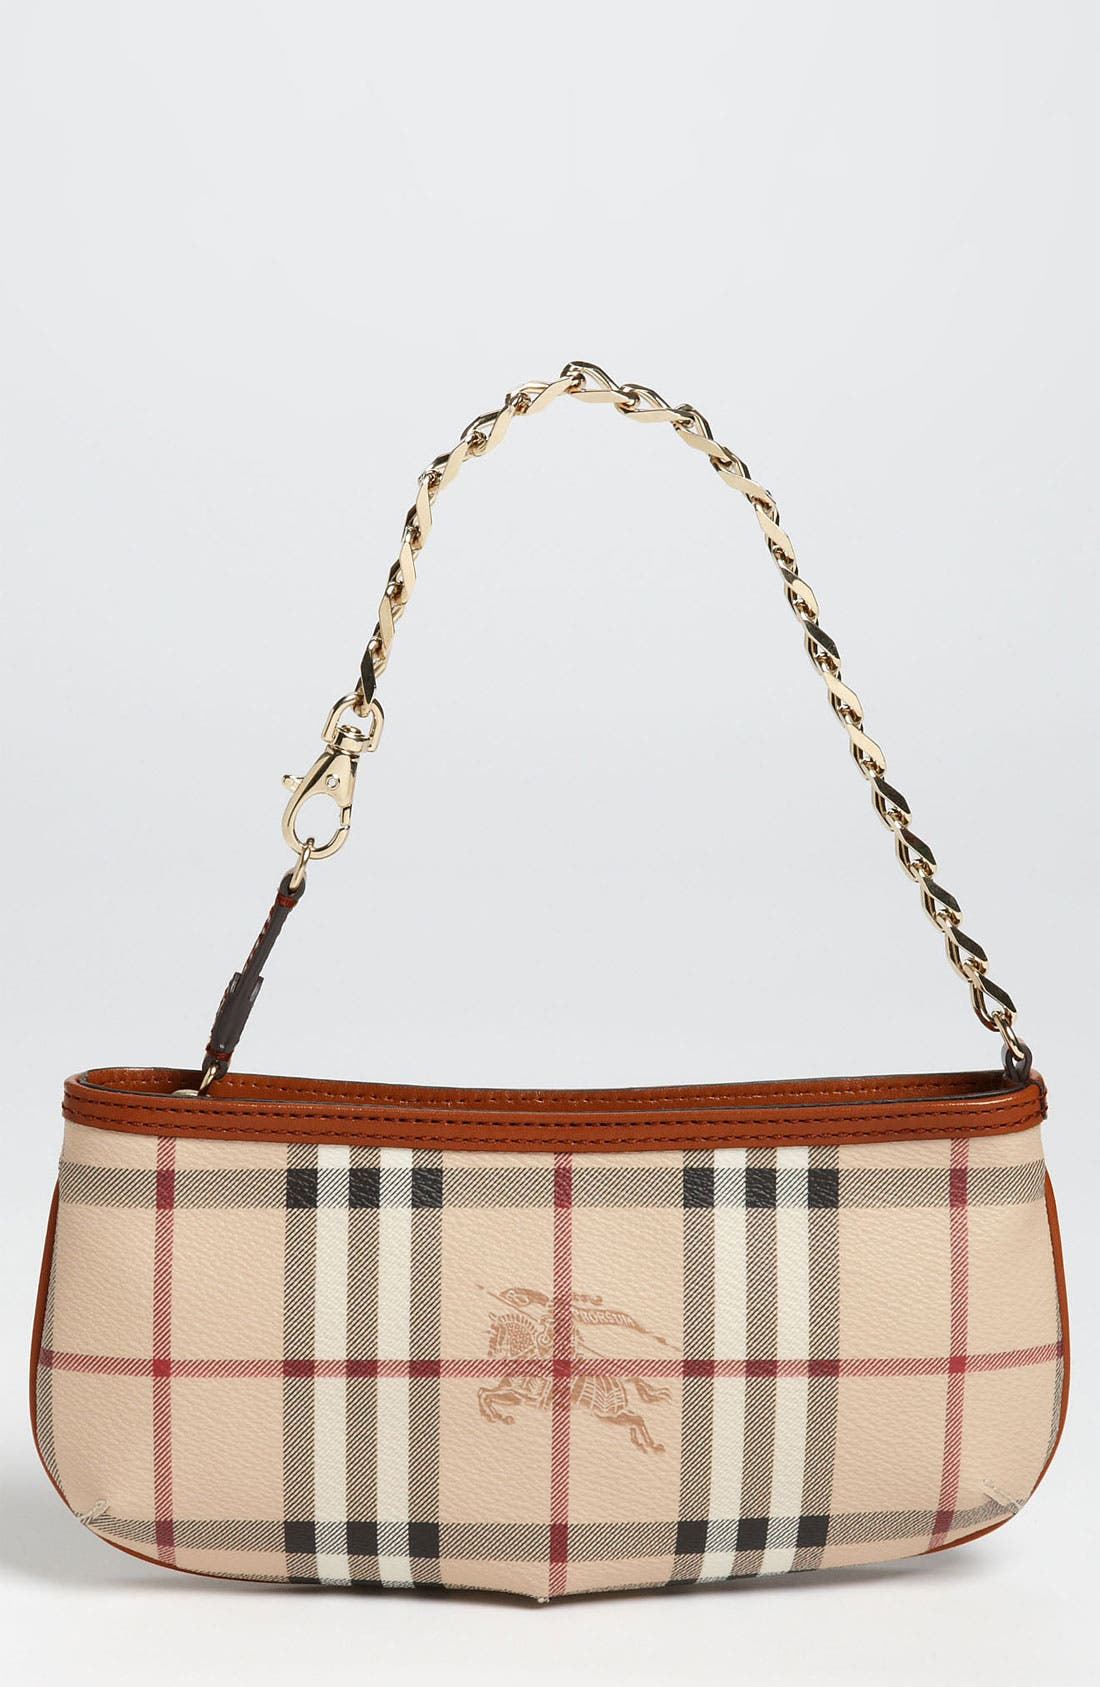 Alternate Image 1 Selected - Burberry 'Haymarket Check' Convertible Wristlet